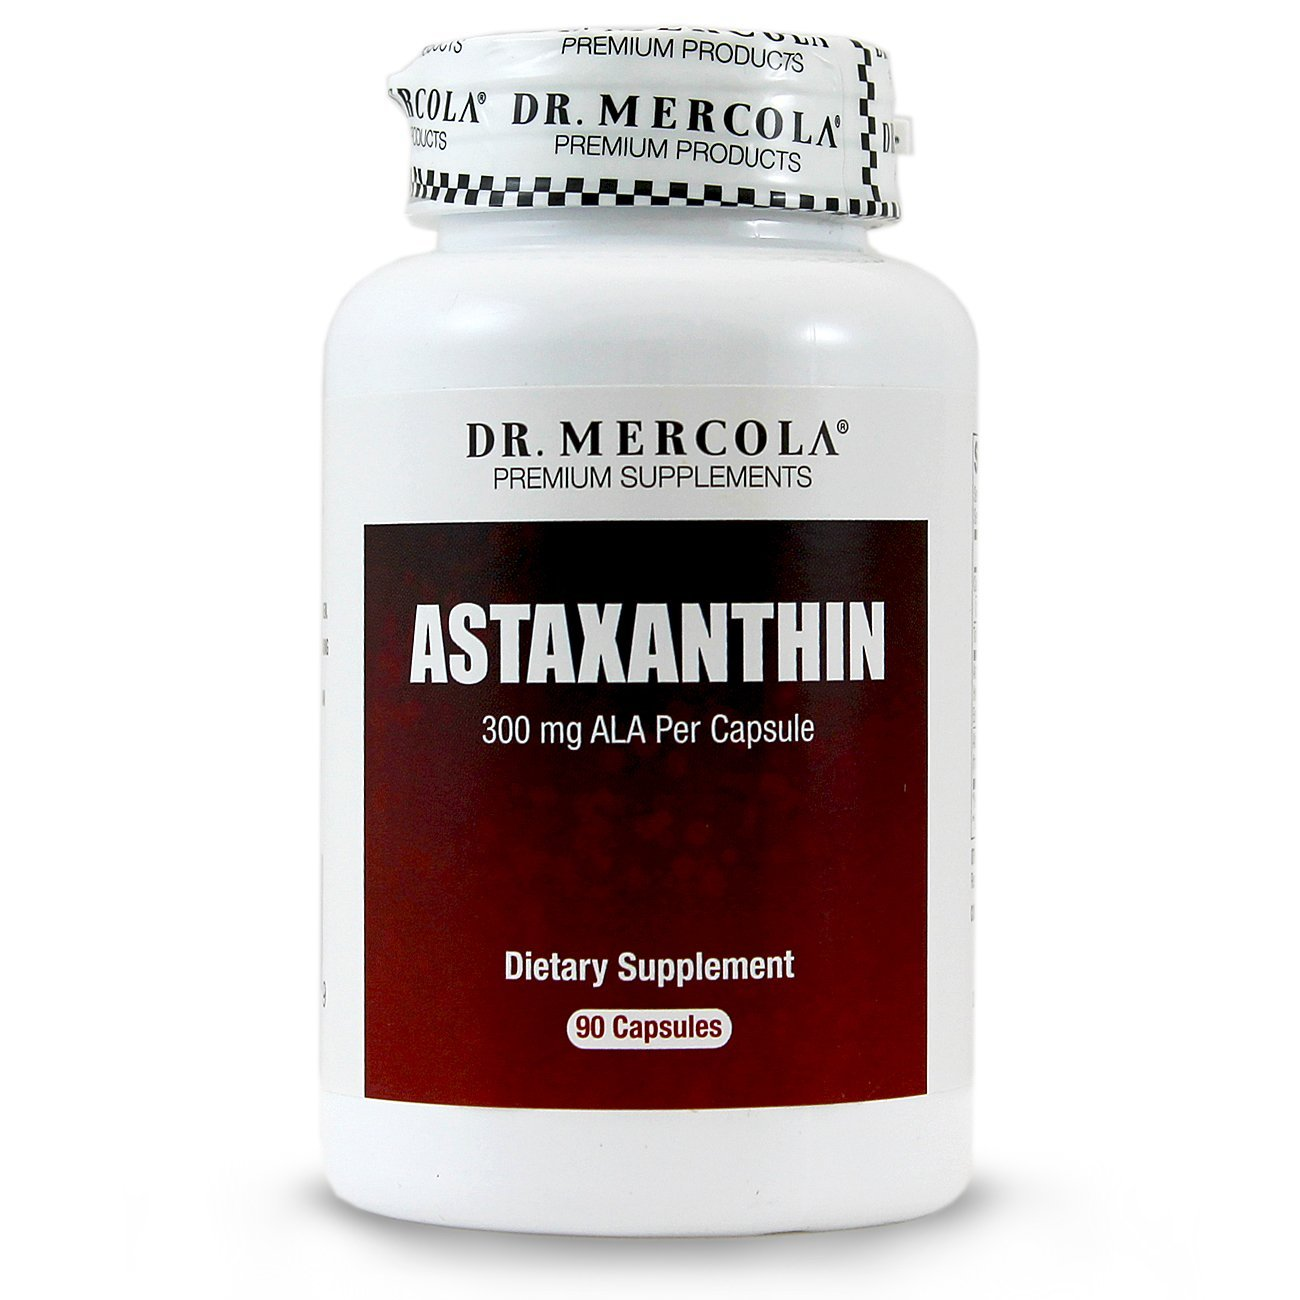 where is astaxanthin sold? You get can trusted brand supplement on Amazon